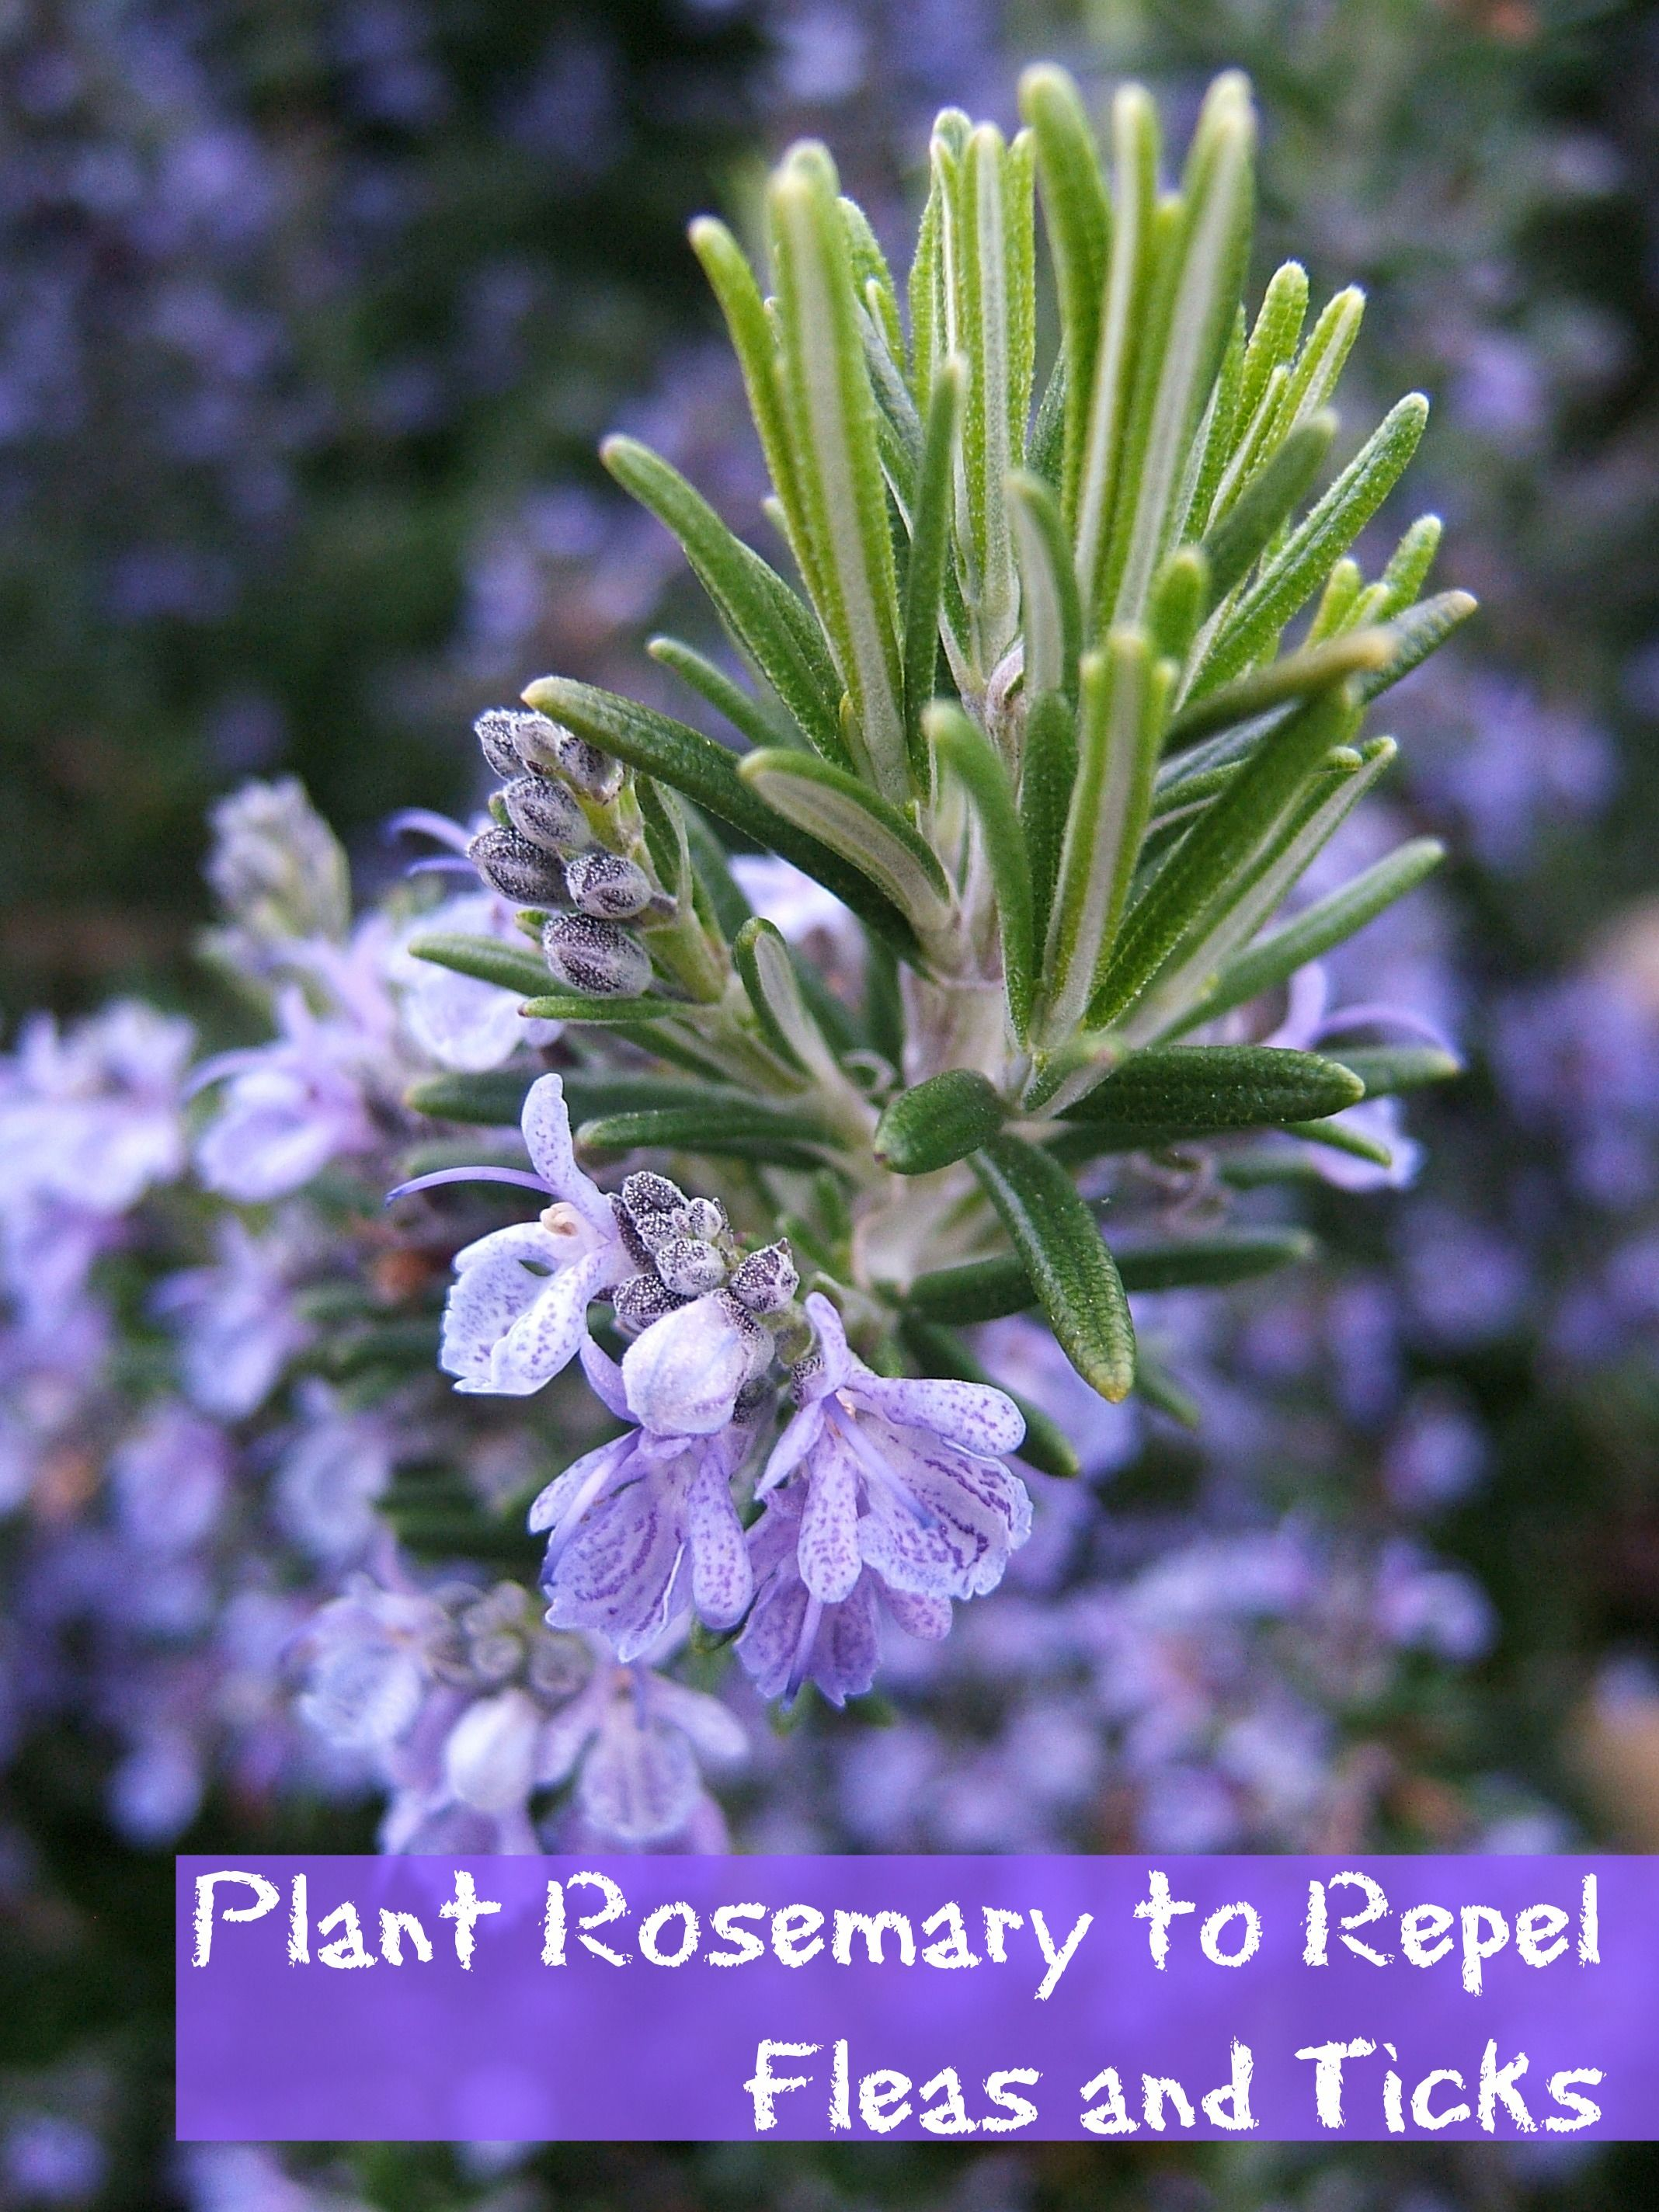 Keep Pests Off Pets! Plants to Grow That Repel Ticks and ...